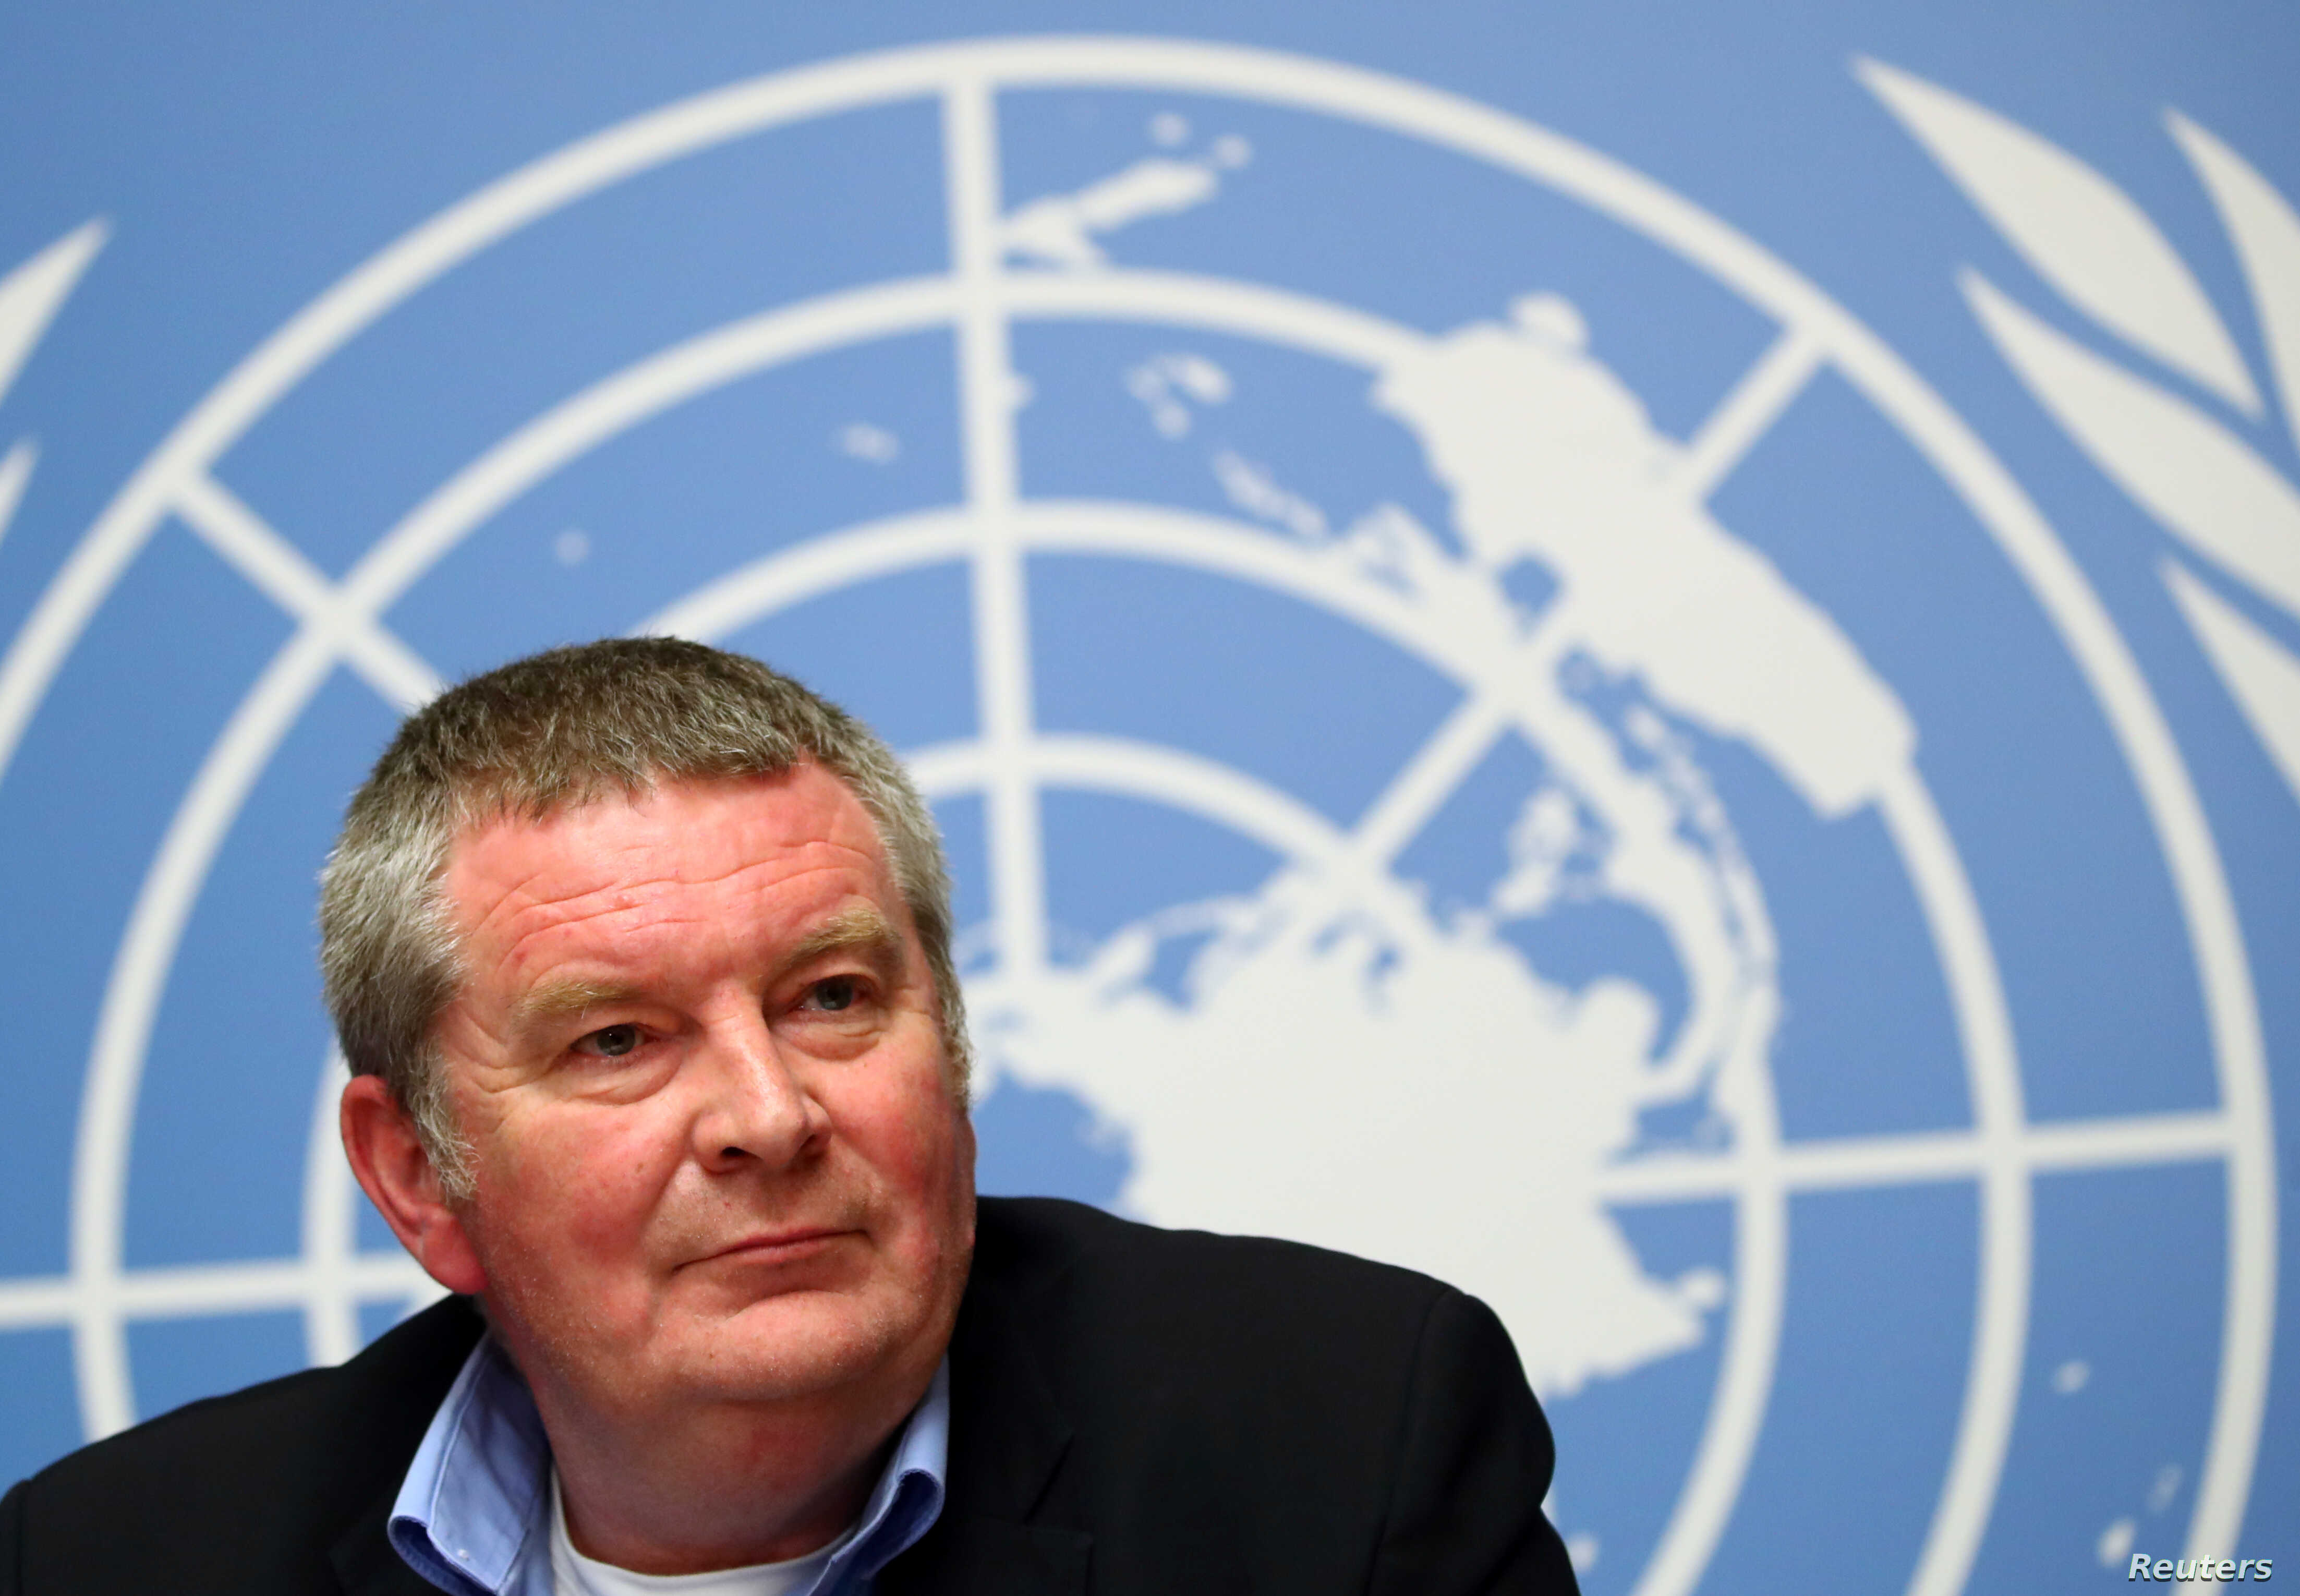 Mike Ryan, Executive Director of the World Health Organization (WHO) attends a news conference on the Ebola outbreak in the Democratic Republic of Congo at the United Nations in Geneva, Switzerland May 3, 2019.